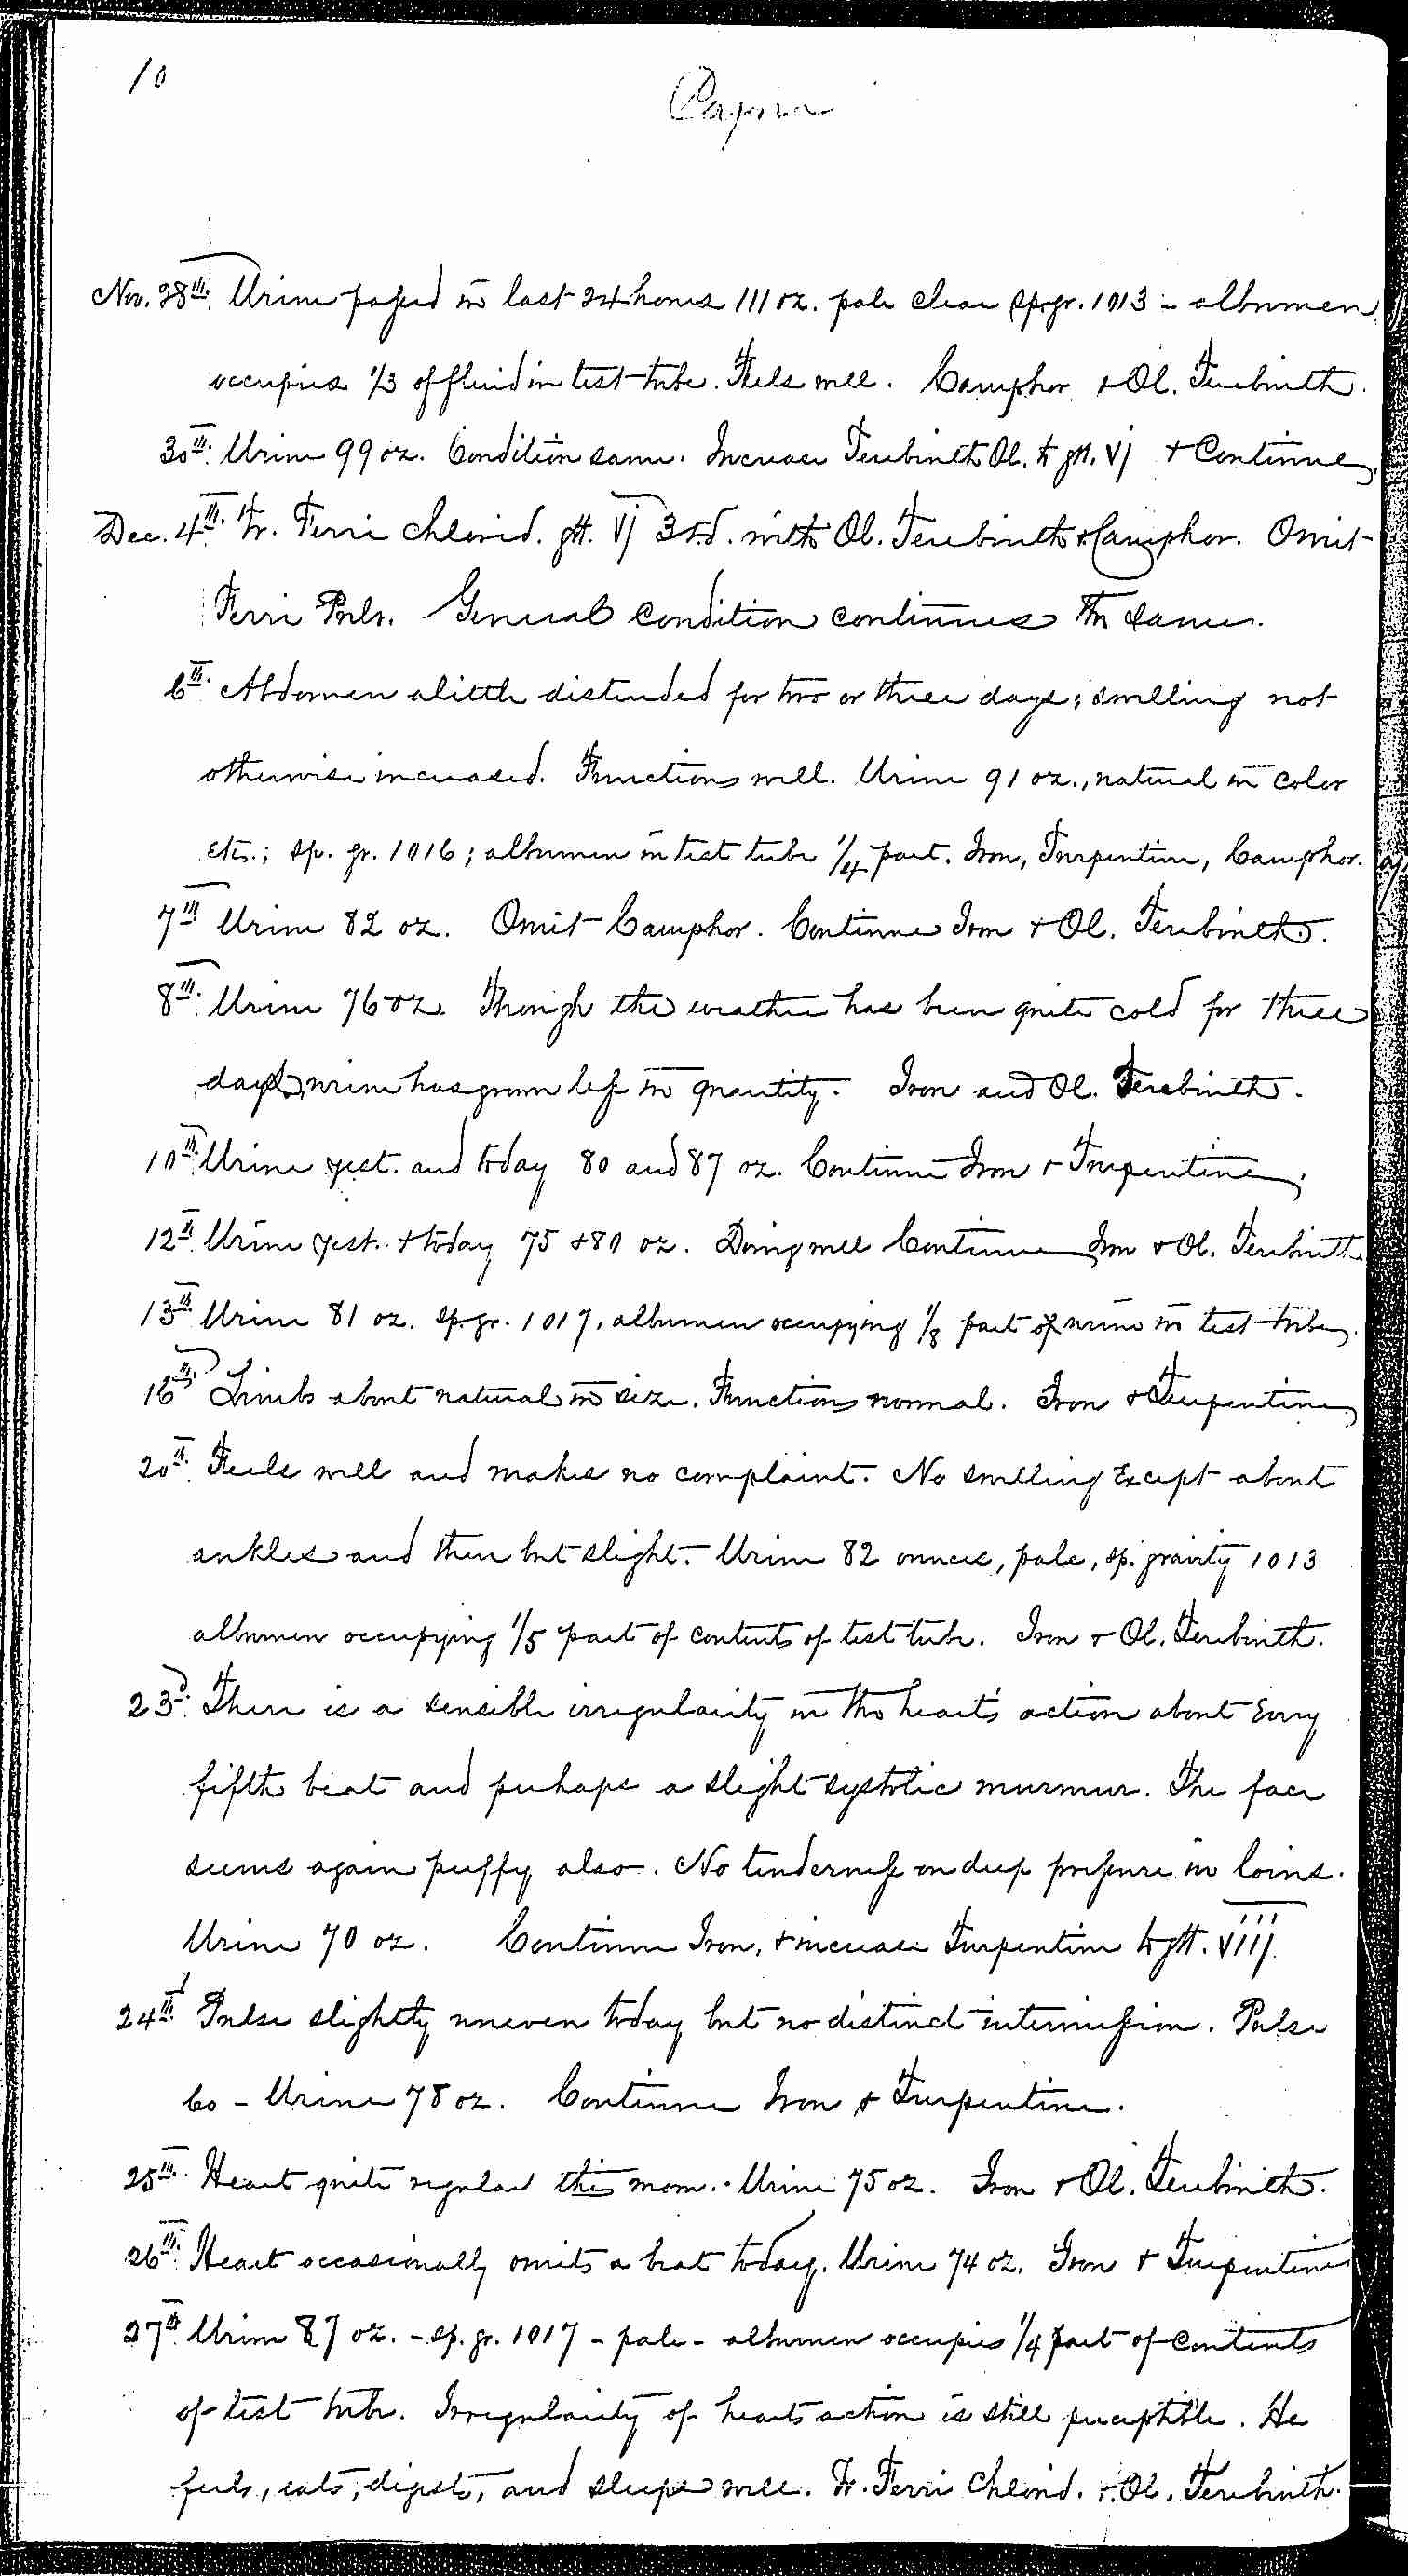 Entry for Bernard Coyne (page 10 of 13) in the log Hospital Tickets and Case Papers - Naval Hospital - Washington, D.C. - 1868-69